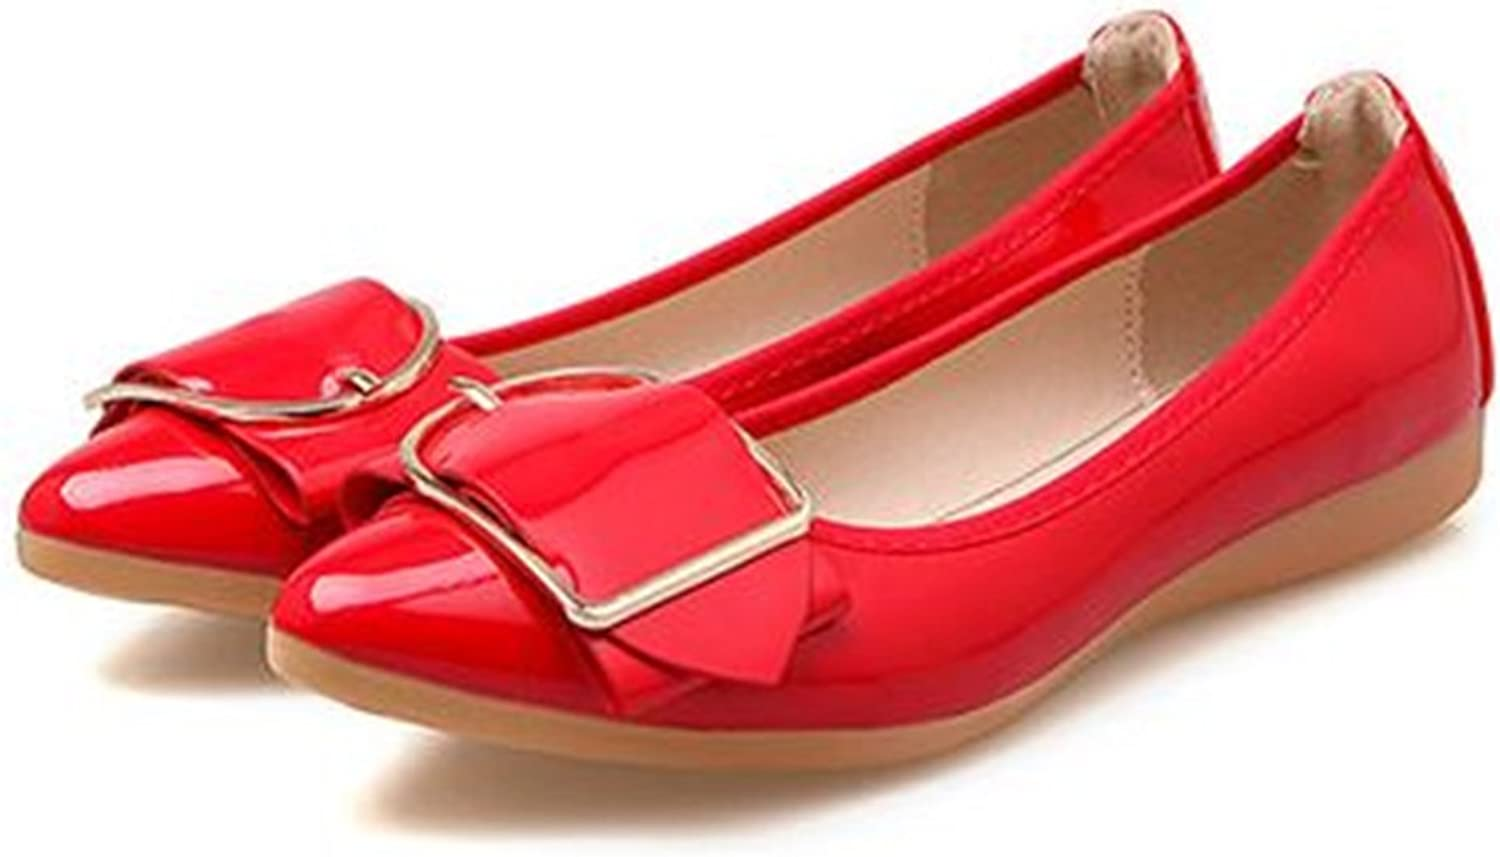 Fancyww Women's Slip On Flats Pointy Toe Buckle Decor Patent Leather Wedding Ballet shoes